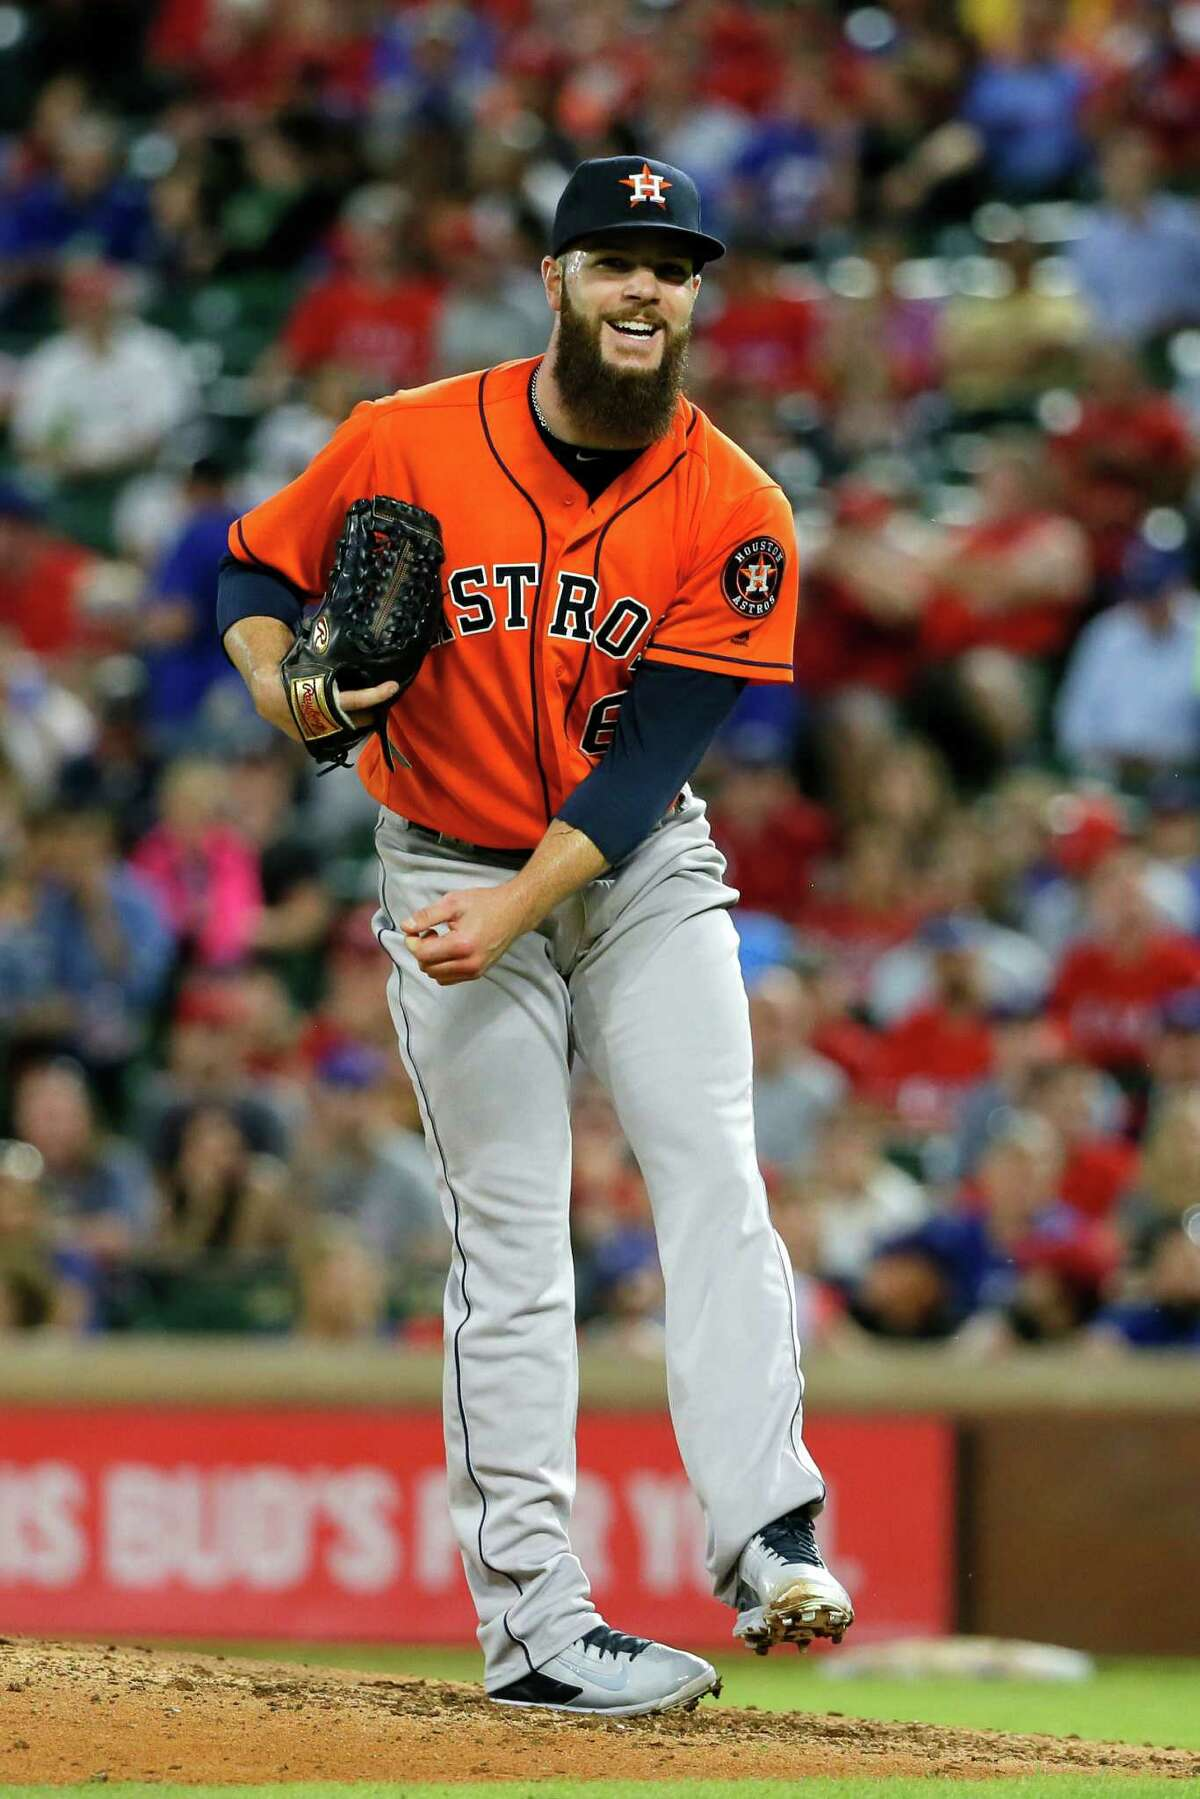 April 21: Rangers 7, Astros 4 Houston Astros' Dallas Keuchel follows through on his deliver to the Texas Rangers during a baseball game, Thursday, April 21, 2016, in Arlington, Texas. (AP Photo/Tony Gutierrez)